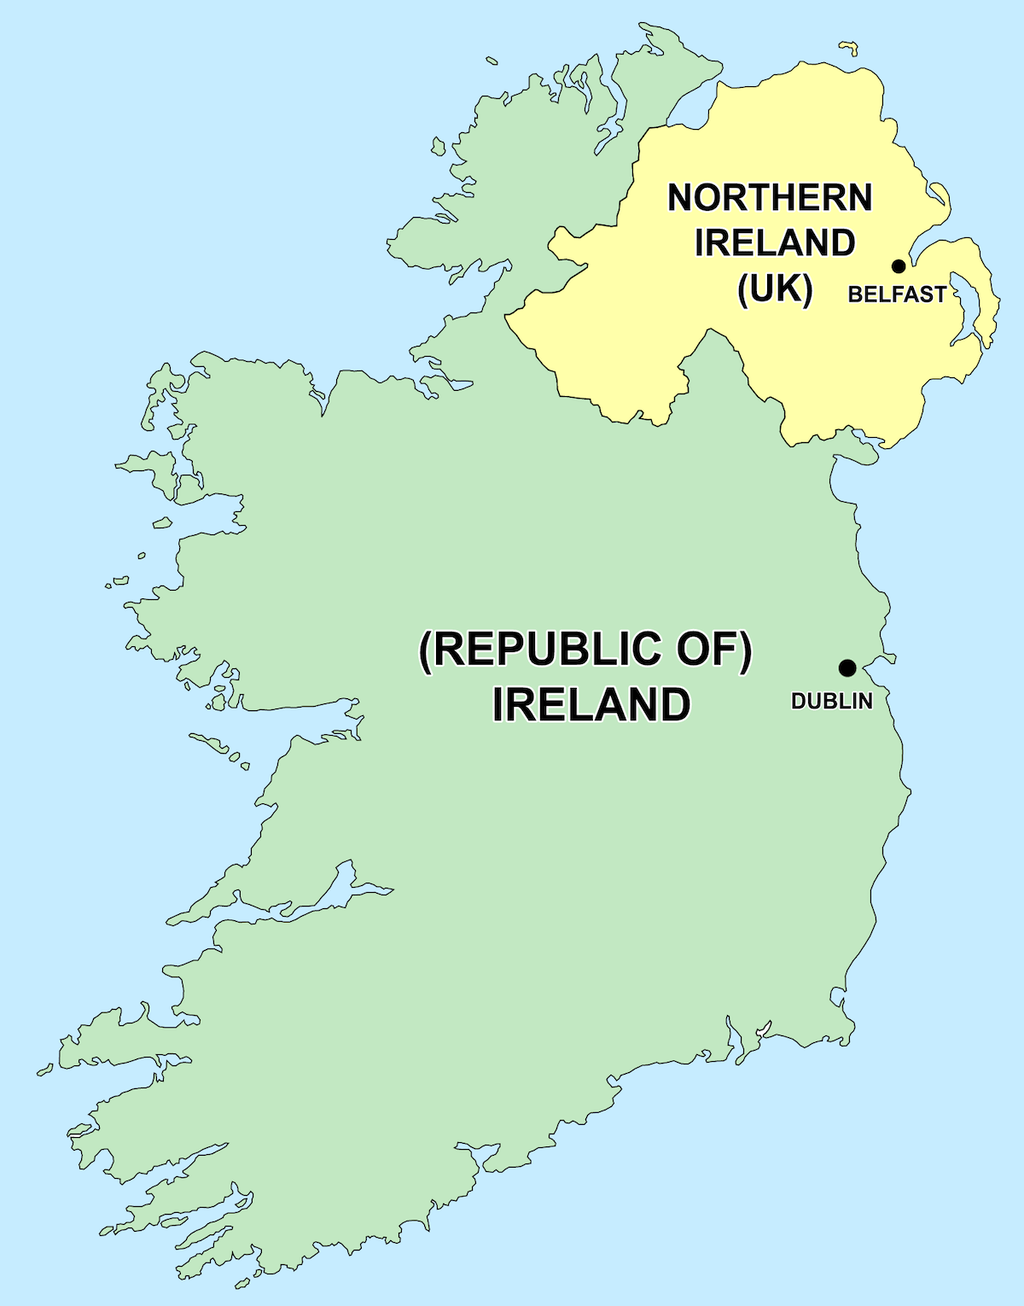 Stock photo of the Republic of Ireland and Northern Ireland.